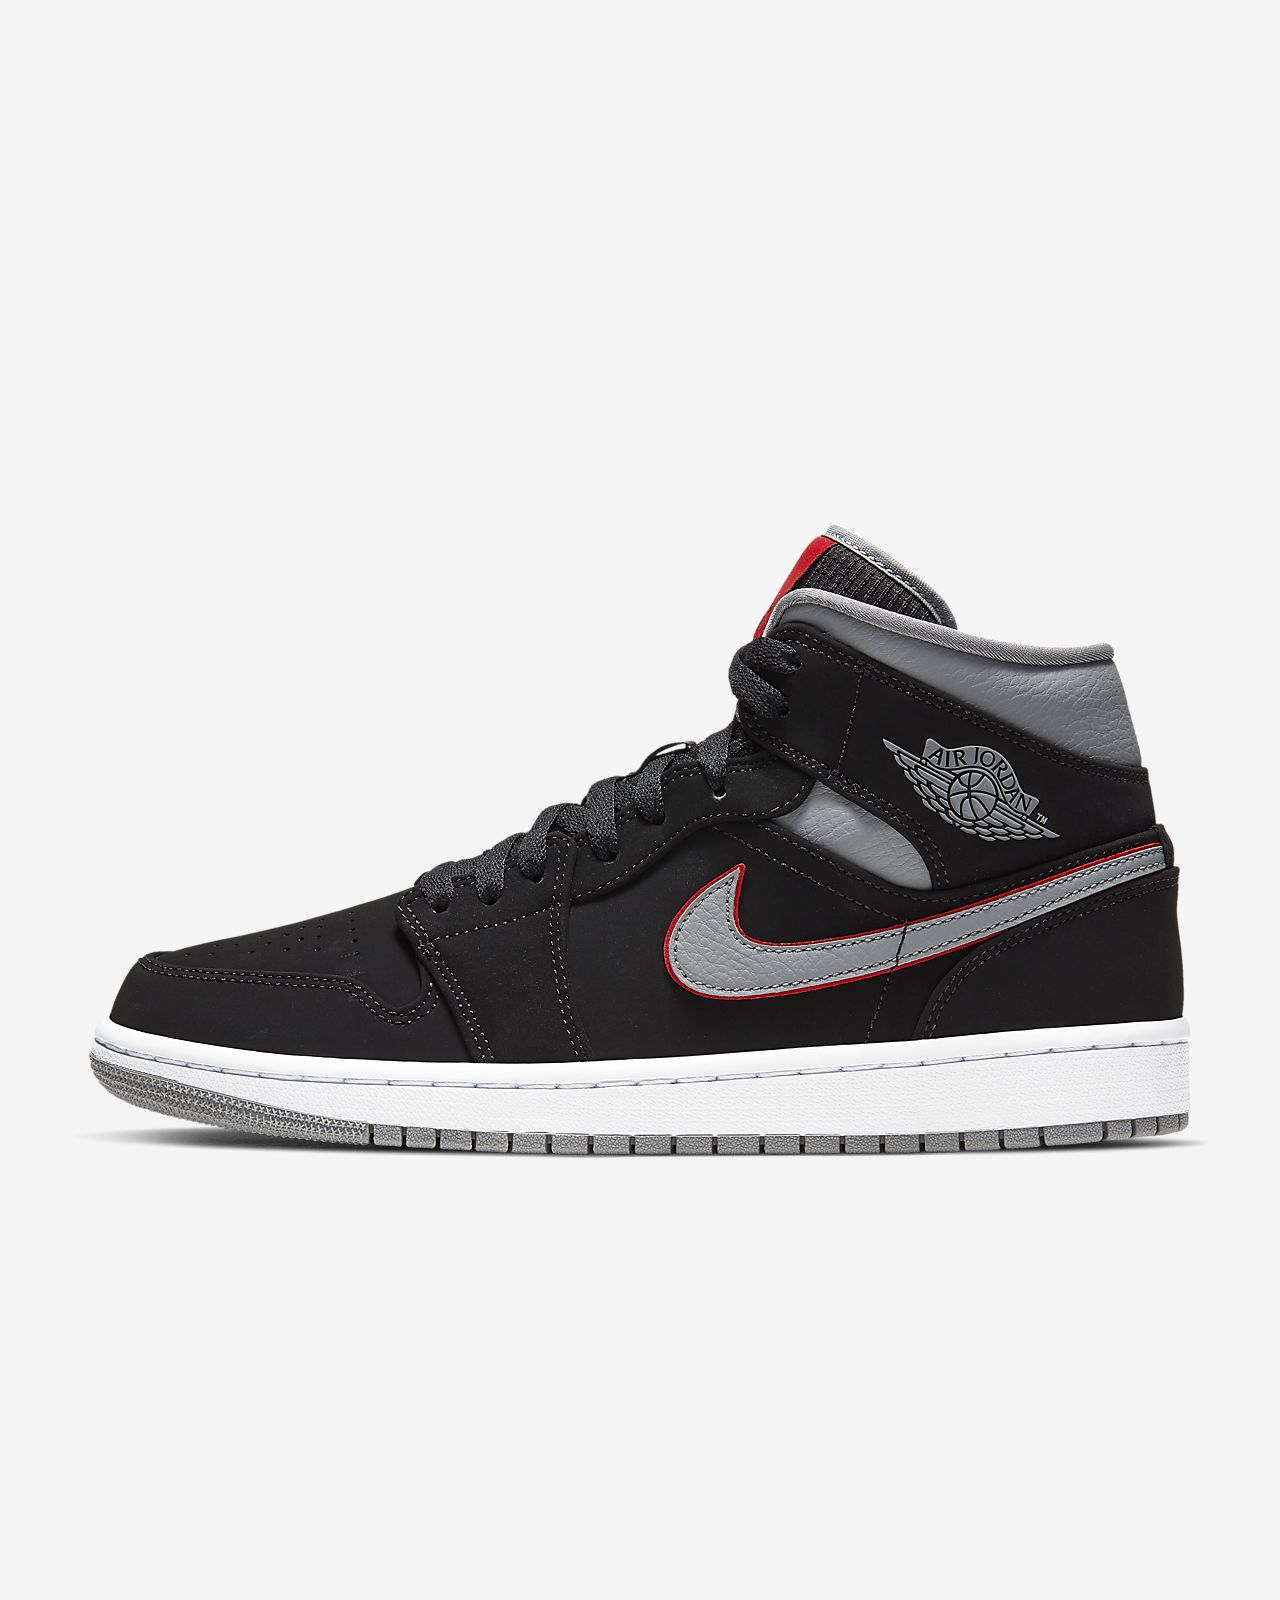 detailed pictures 81d2b 45e22 Low Resolution Air Jordan 1 Mid herresko Air Jordan 1 Mid herresko